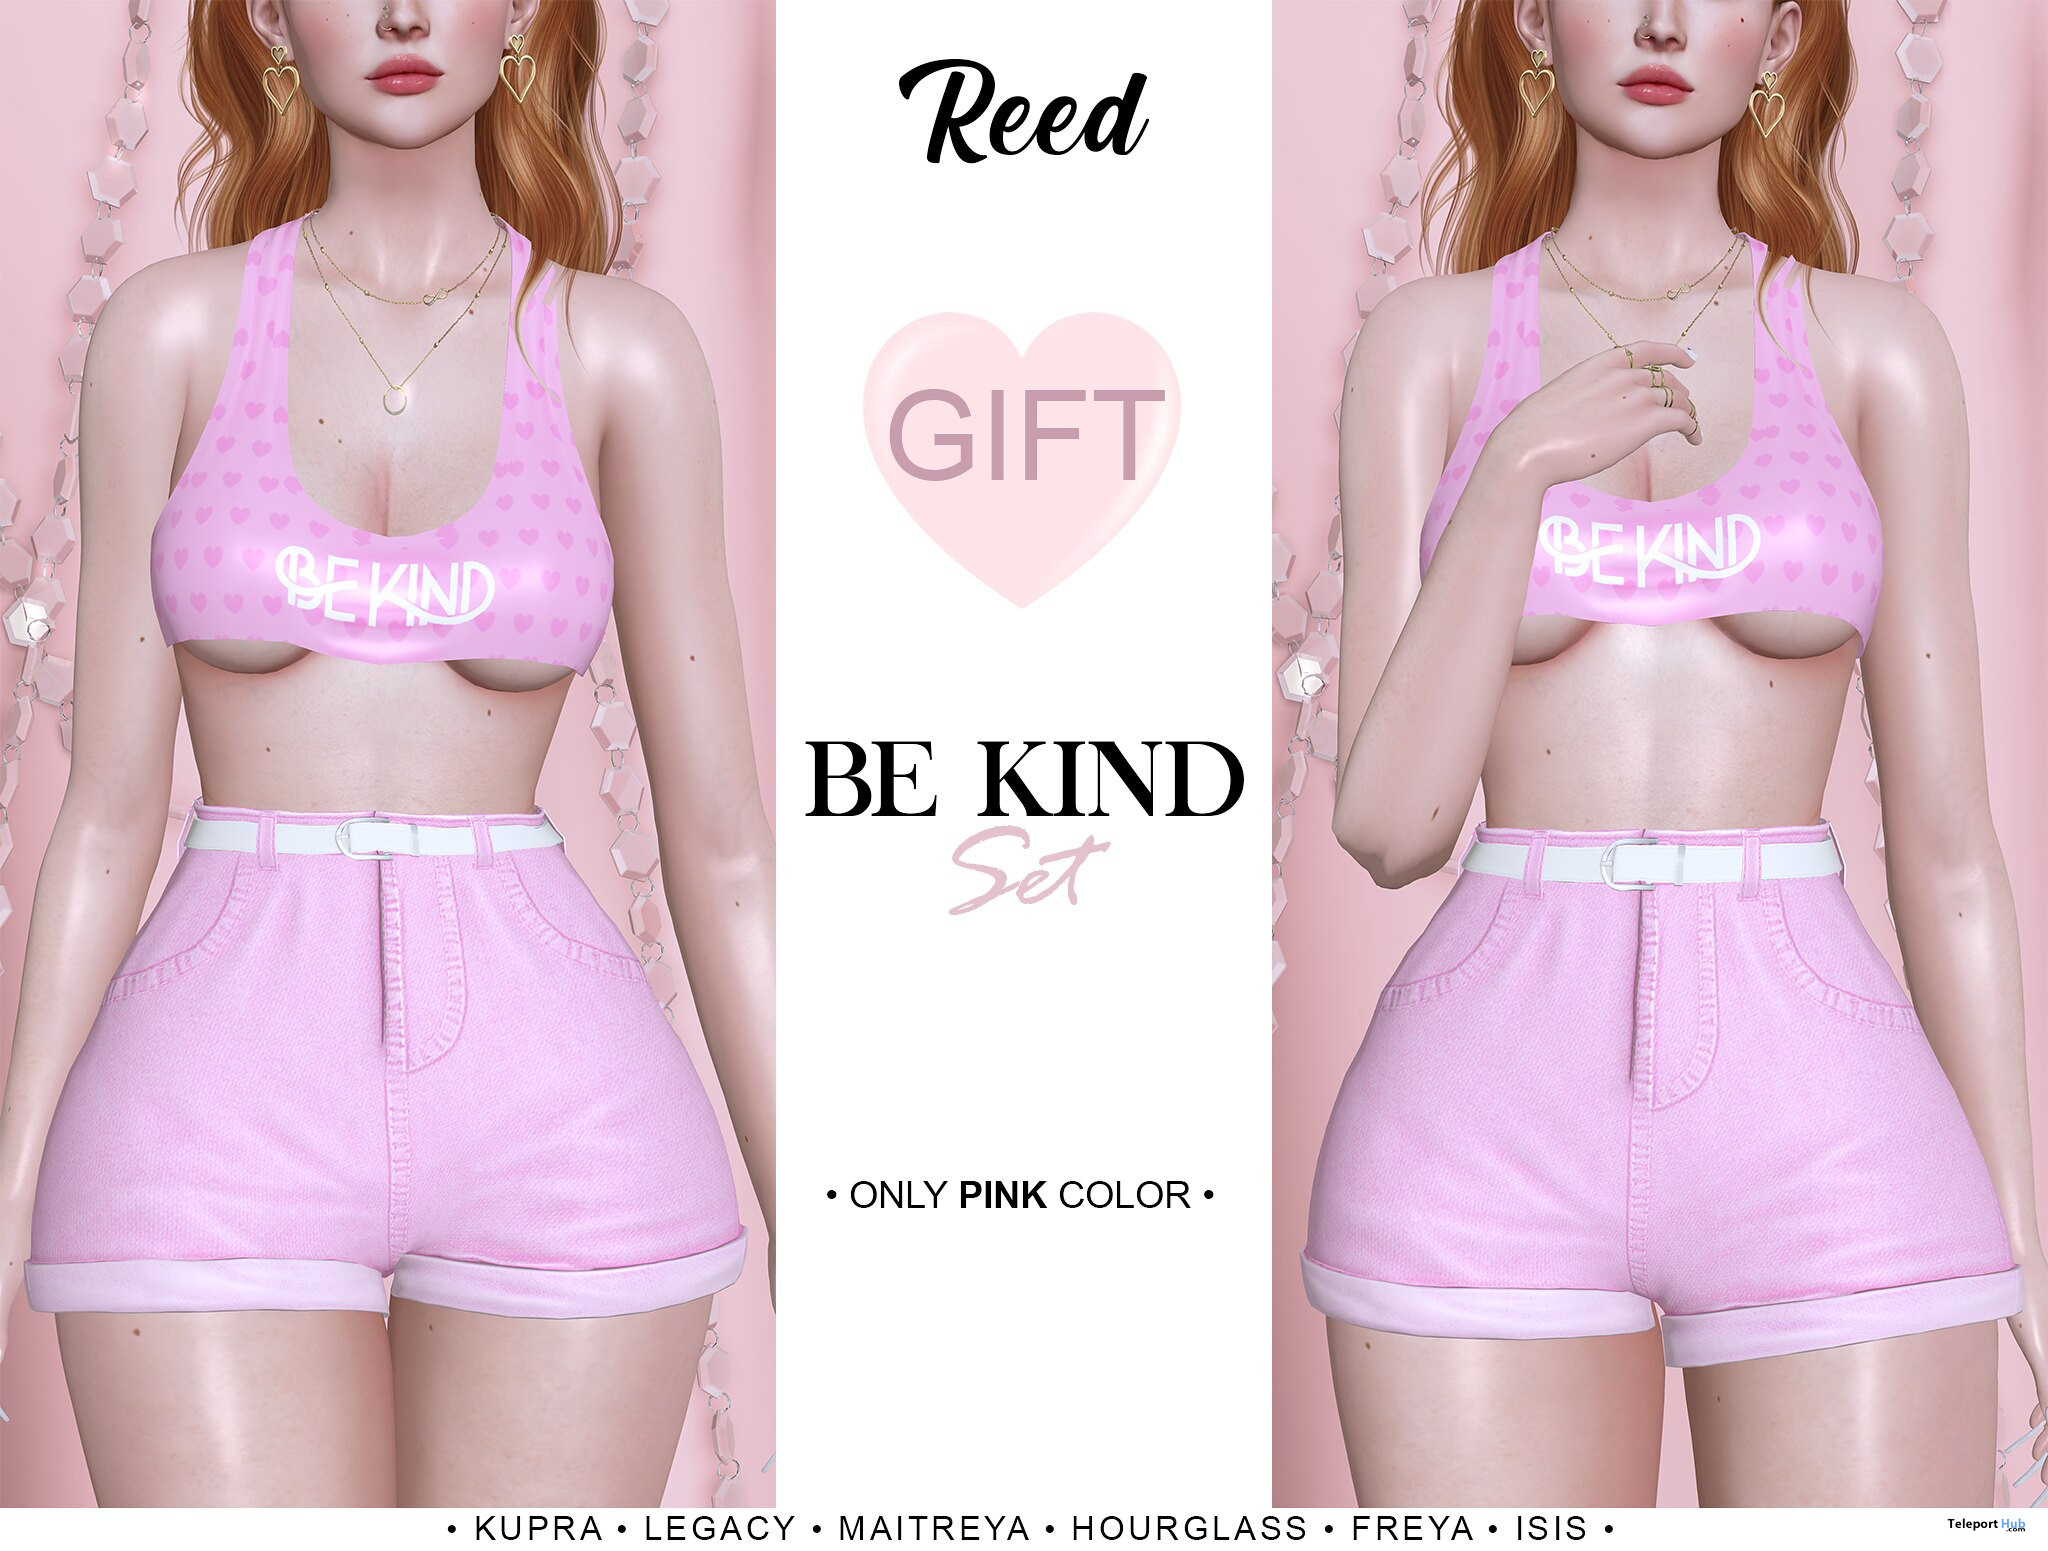 Be Kind Set Pink May 2021 Group Gift by REED - Teleport Hub - teleporthub.com